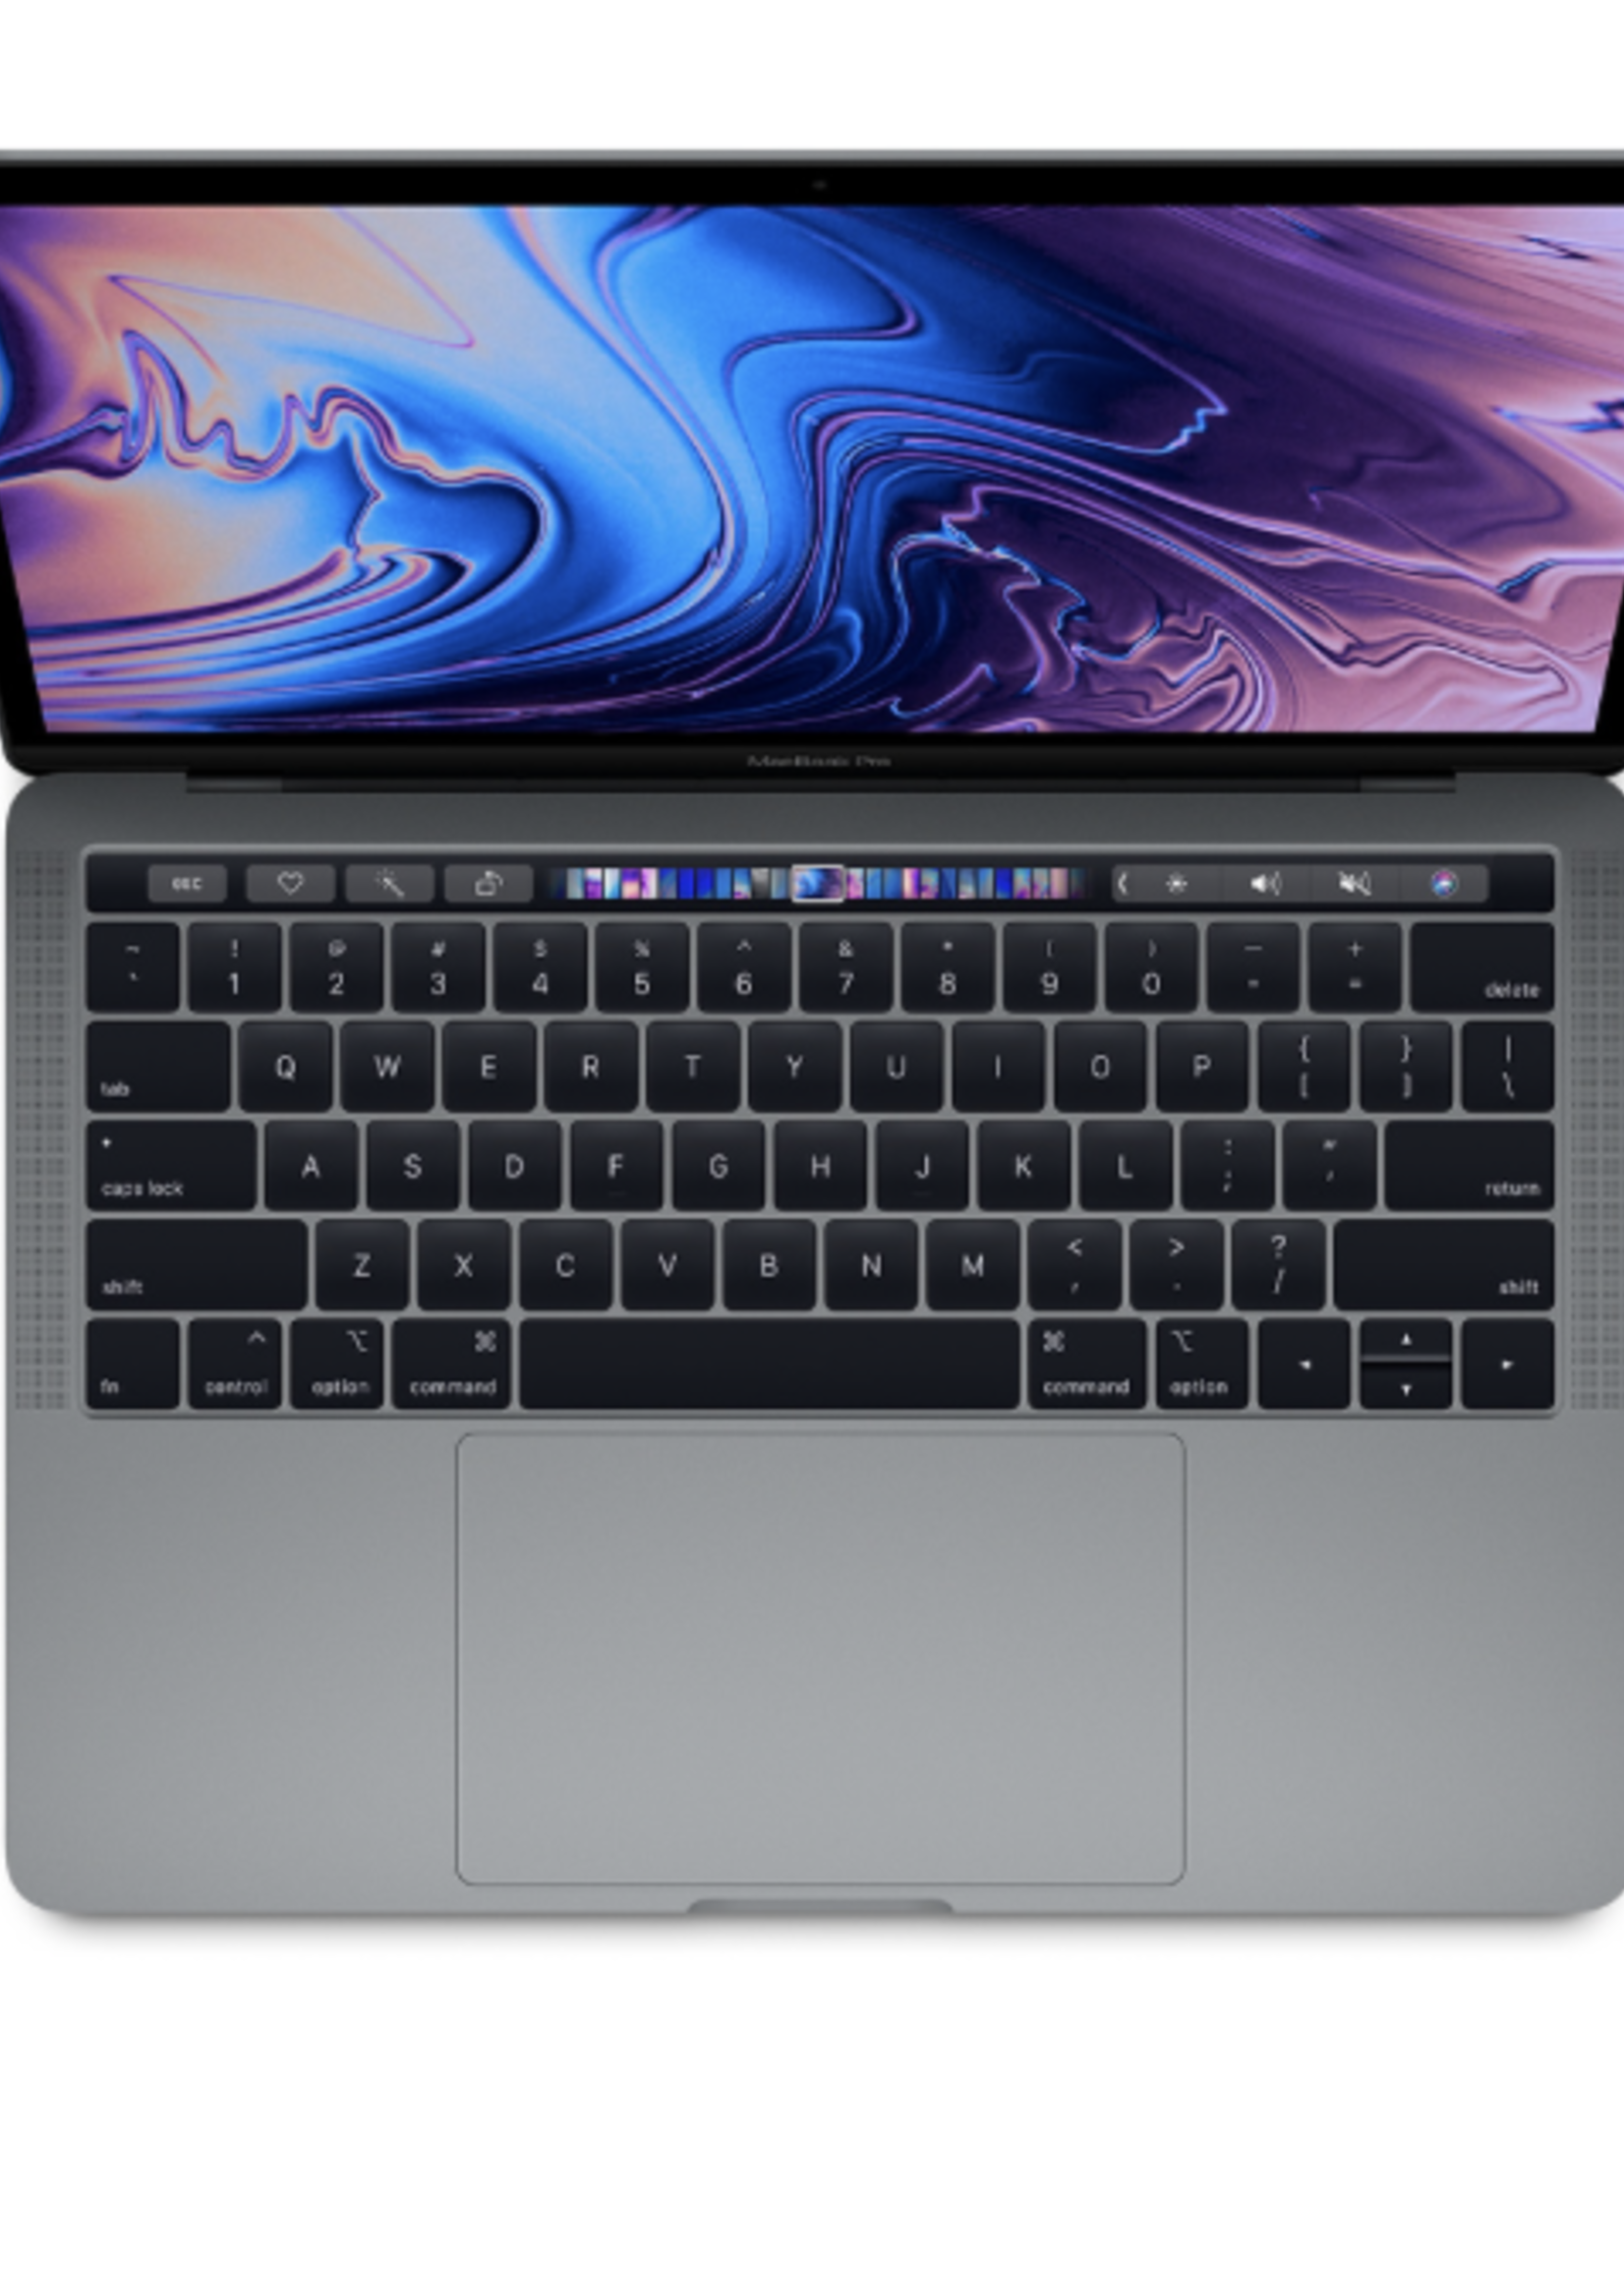 "13"" Macbook Pro w/ touch - 256GB - Space Gray - 1.4GHz"